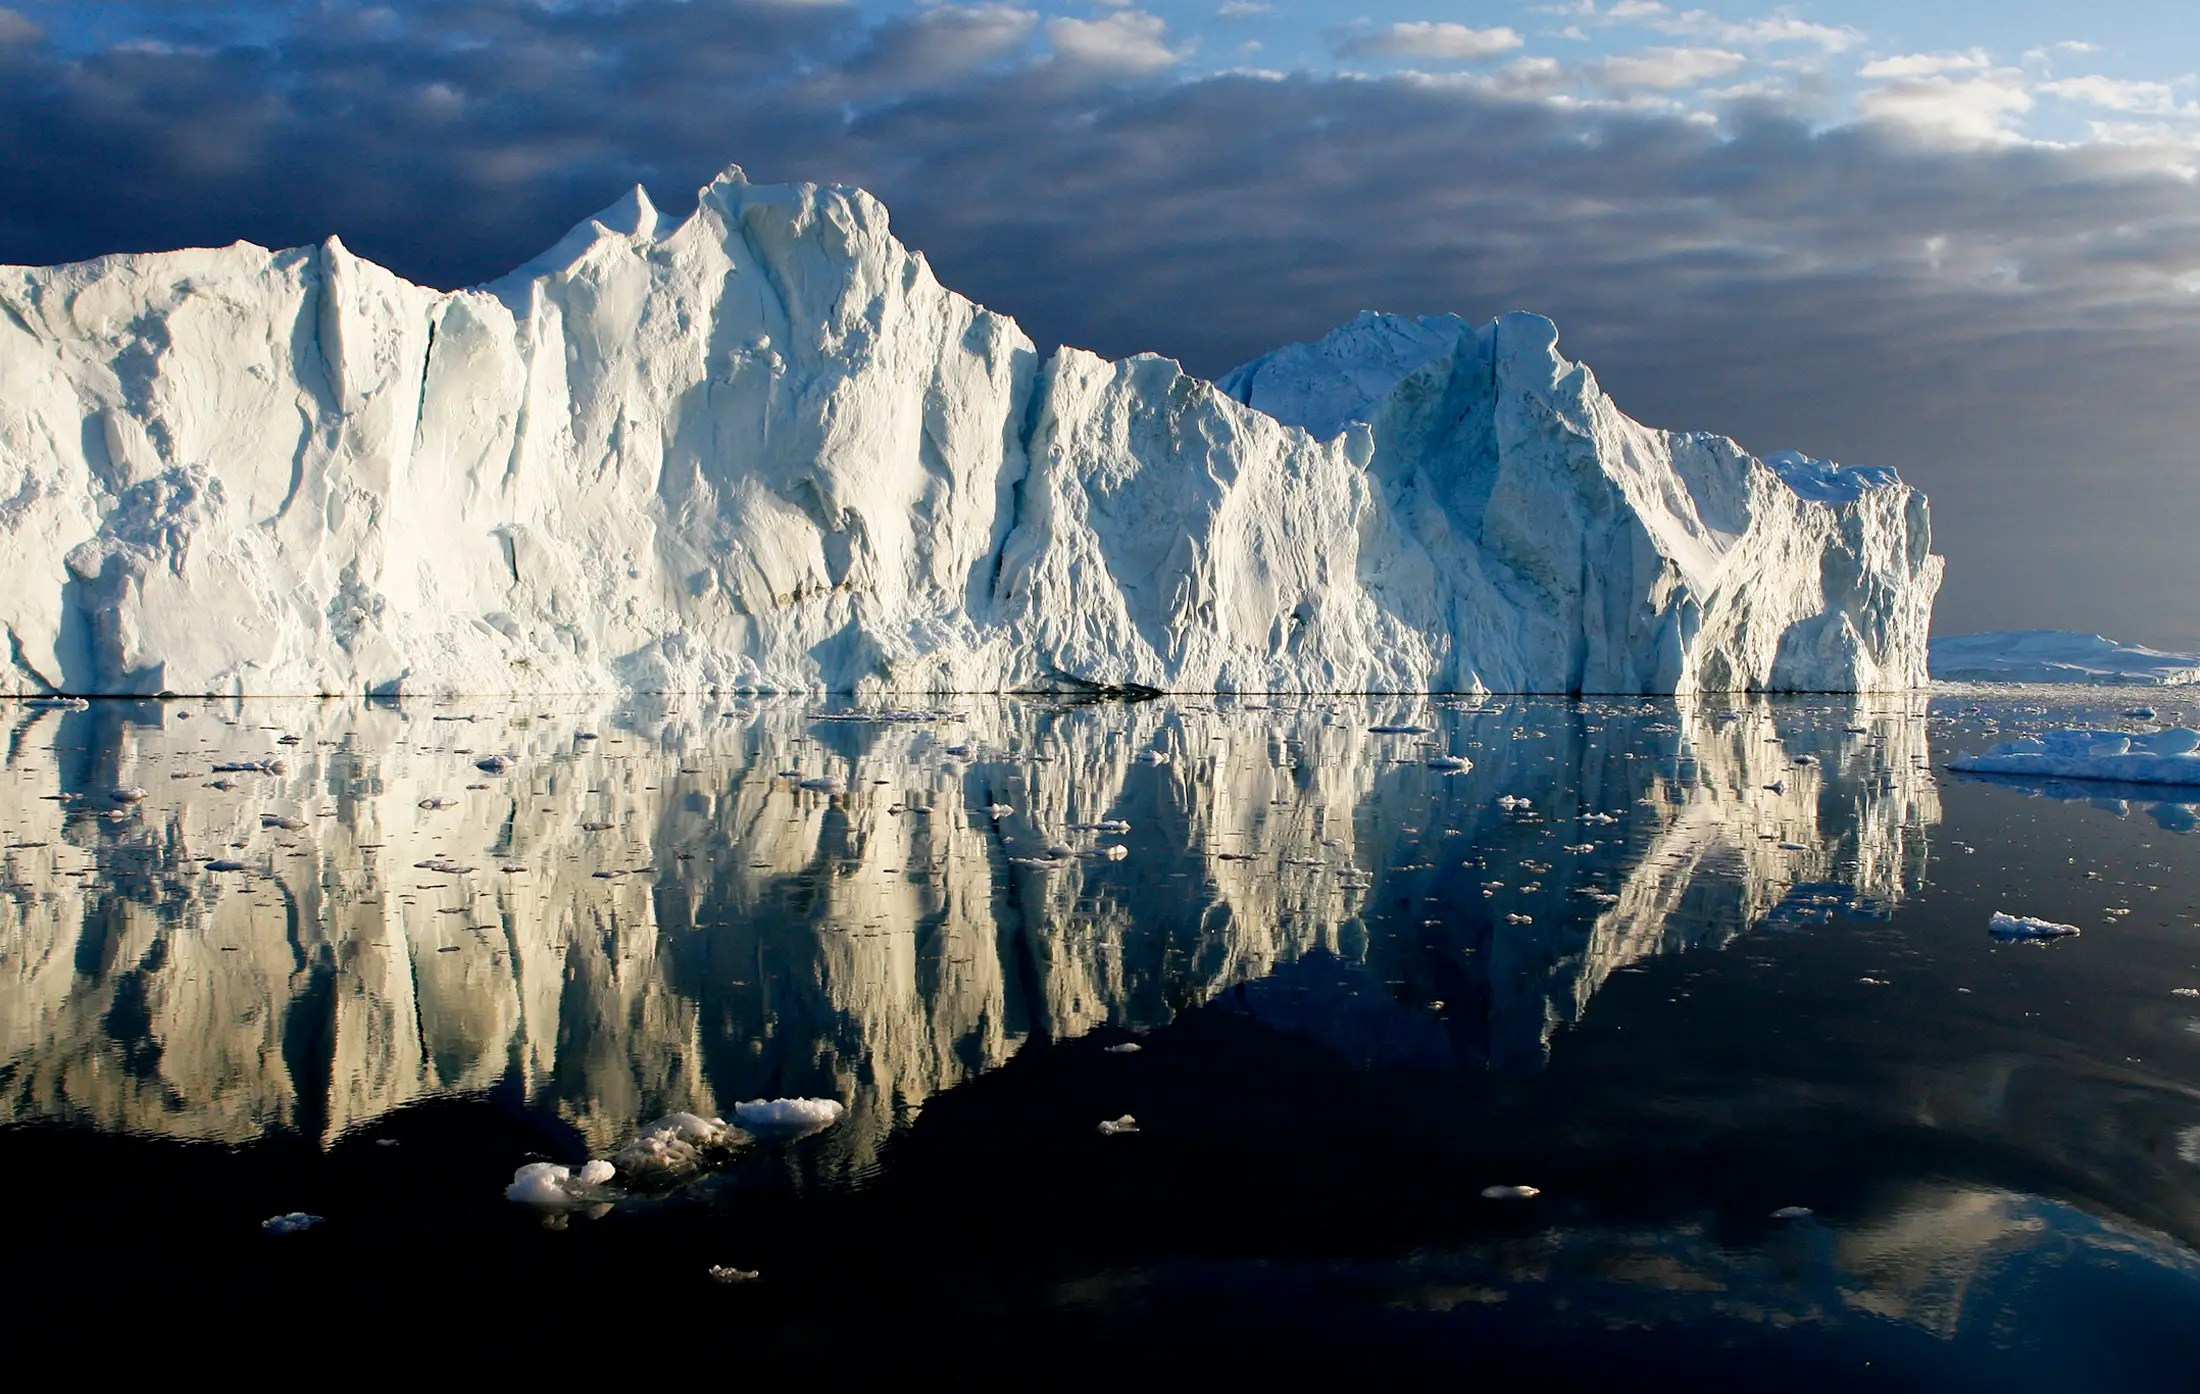 Icebergs are reflected in the calm waters at the mouth of the Jakobshavn ice fjord on the west coast of Greenland.